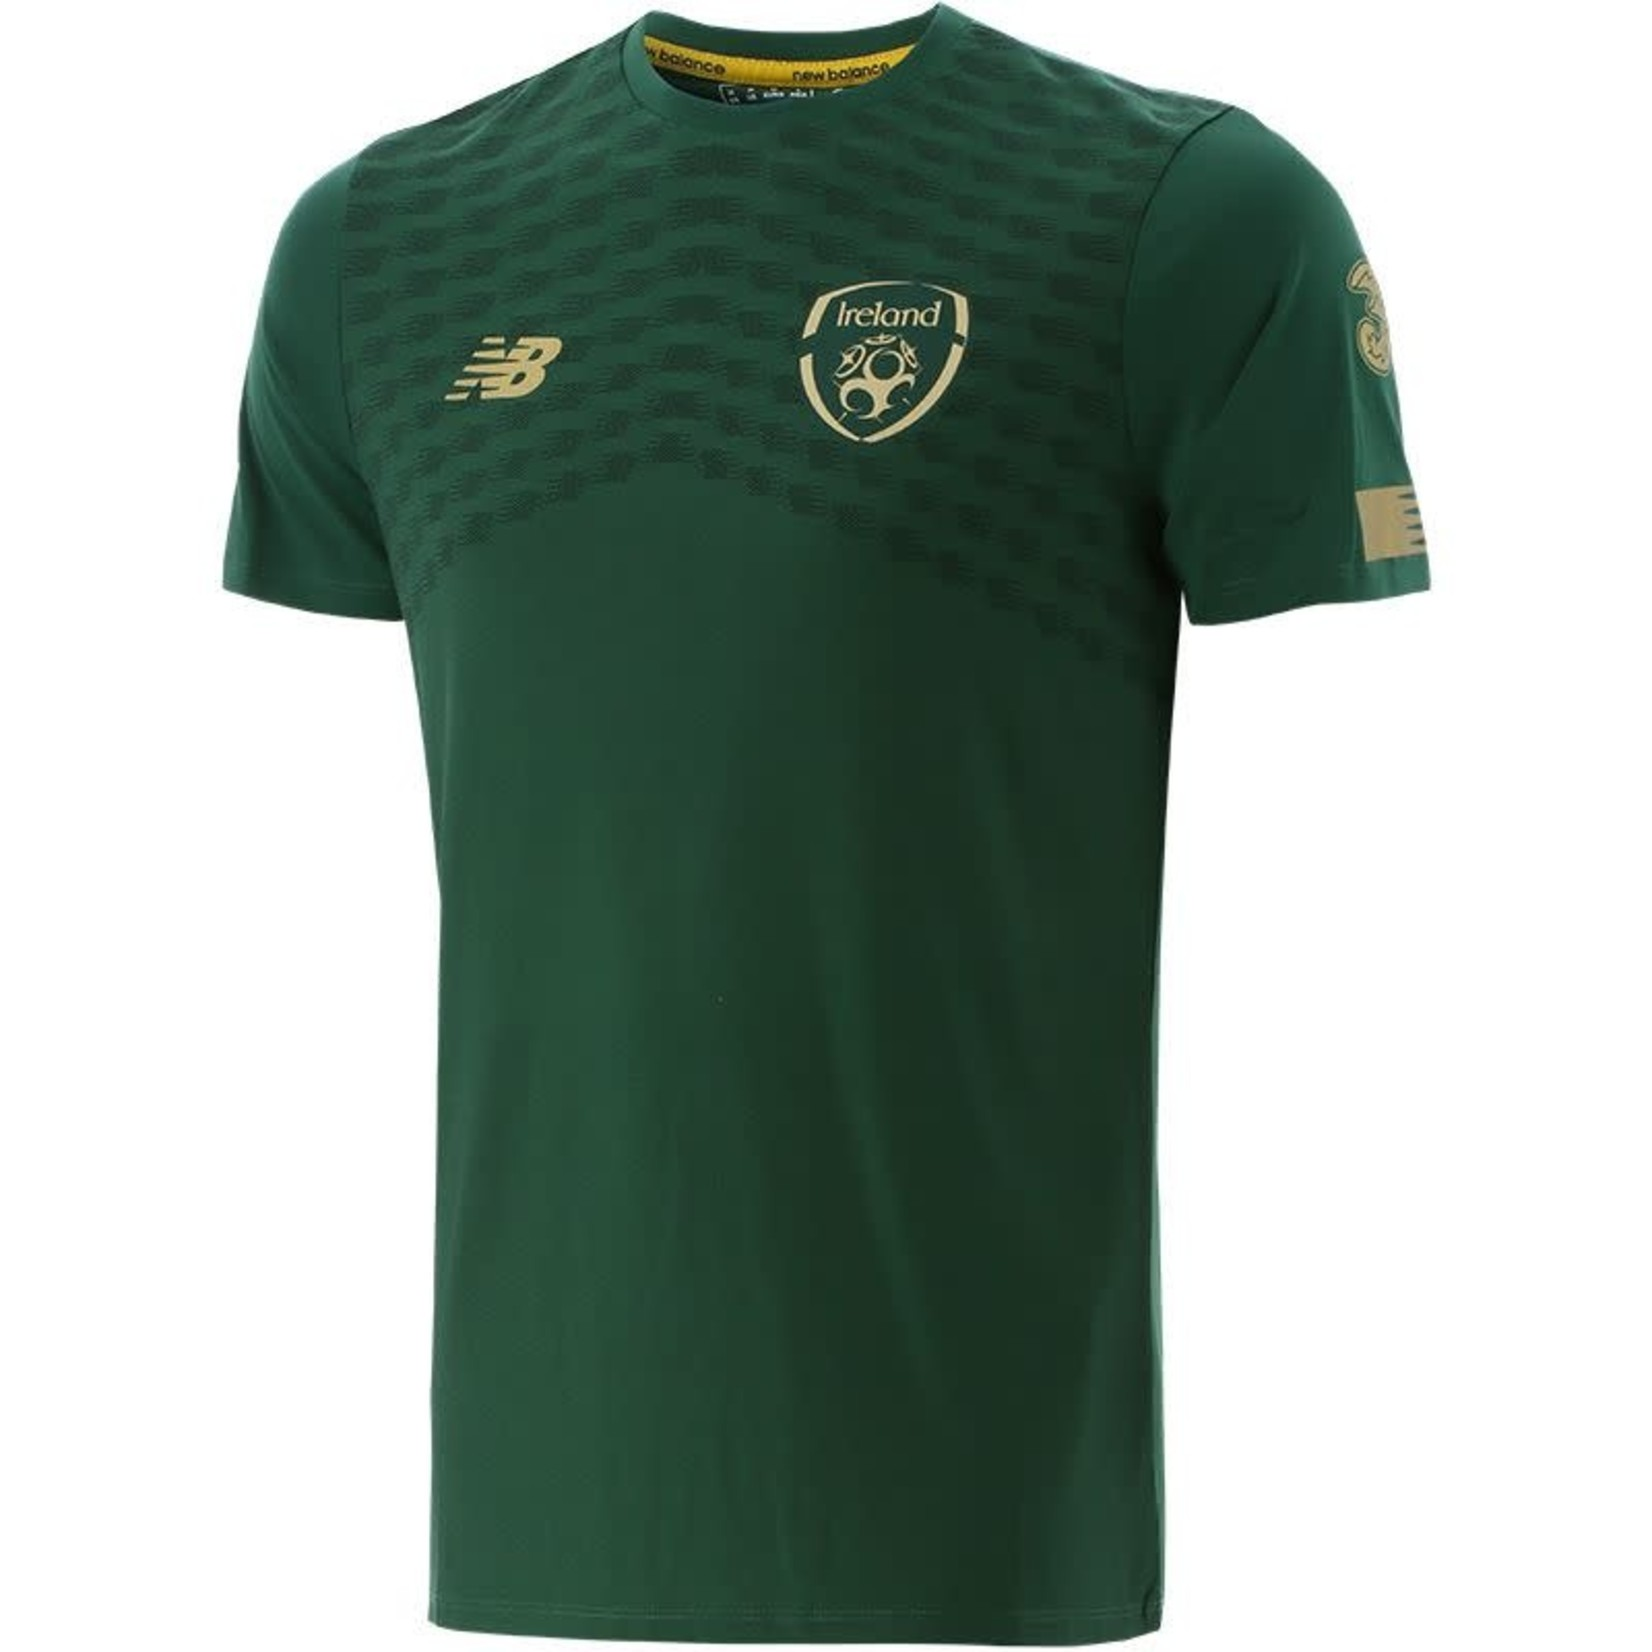 NEW BALANCE IRELAND 2019 PRE-GAME JERSEY (GREEN)